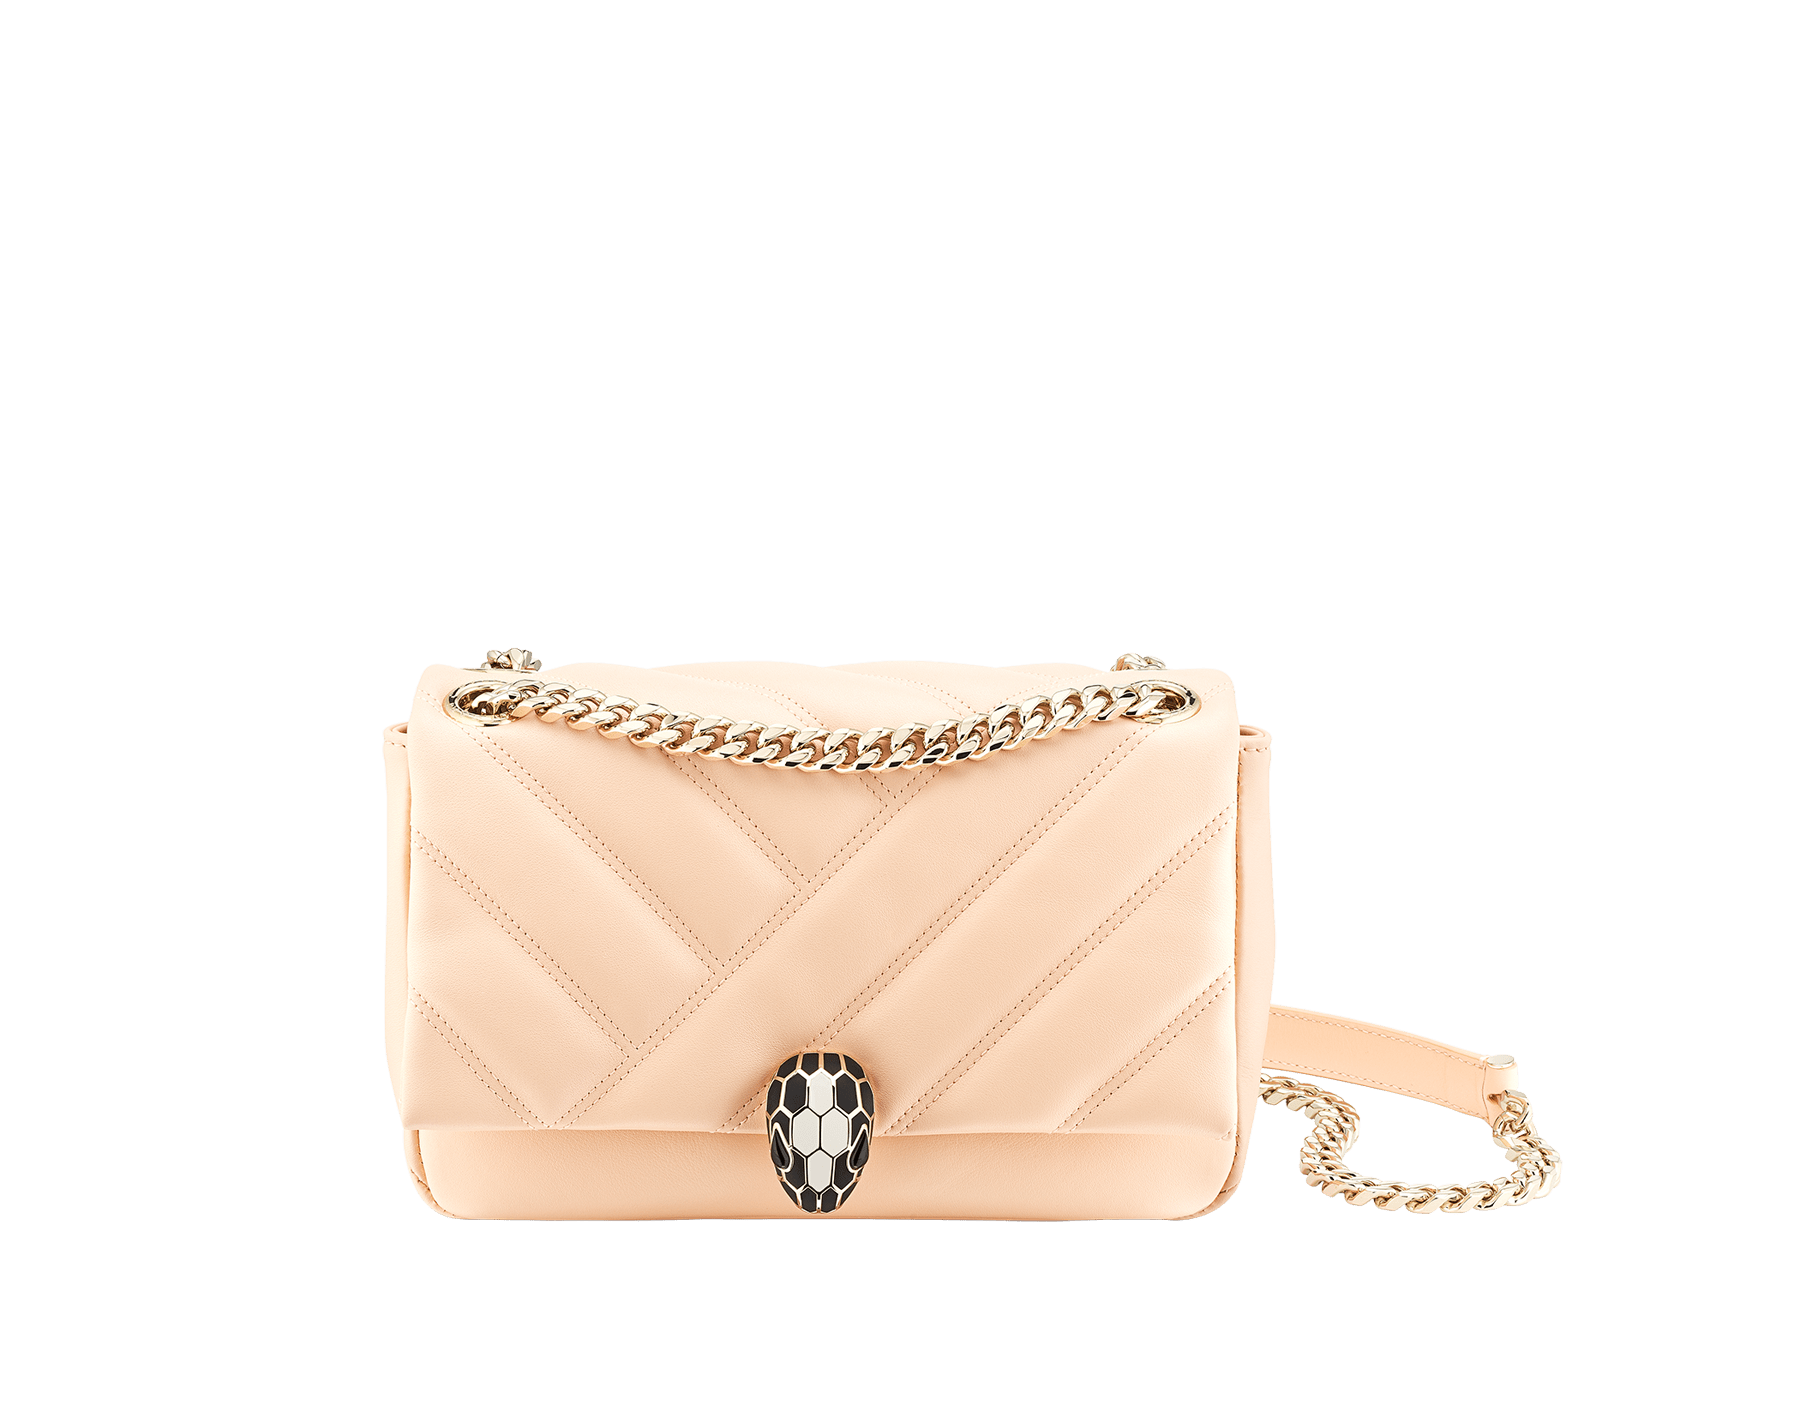 """Serpenti Cabochon"" shoulder bag in soft quilted white agate calf leather, with a graphic motif, and black nappa leather internal lining. Light gold brass plated tempting snakehead closure in matte black and shiny white, with black onyx eyes. 1094-NSM image 1"